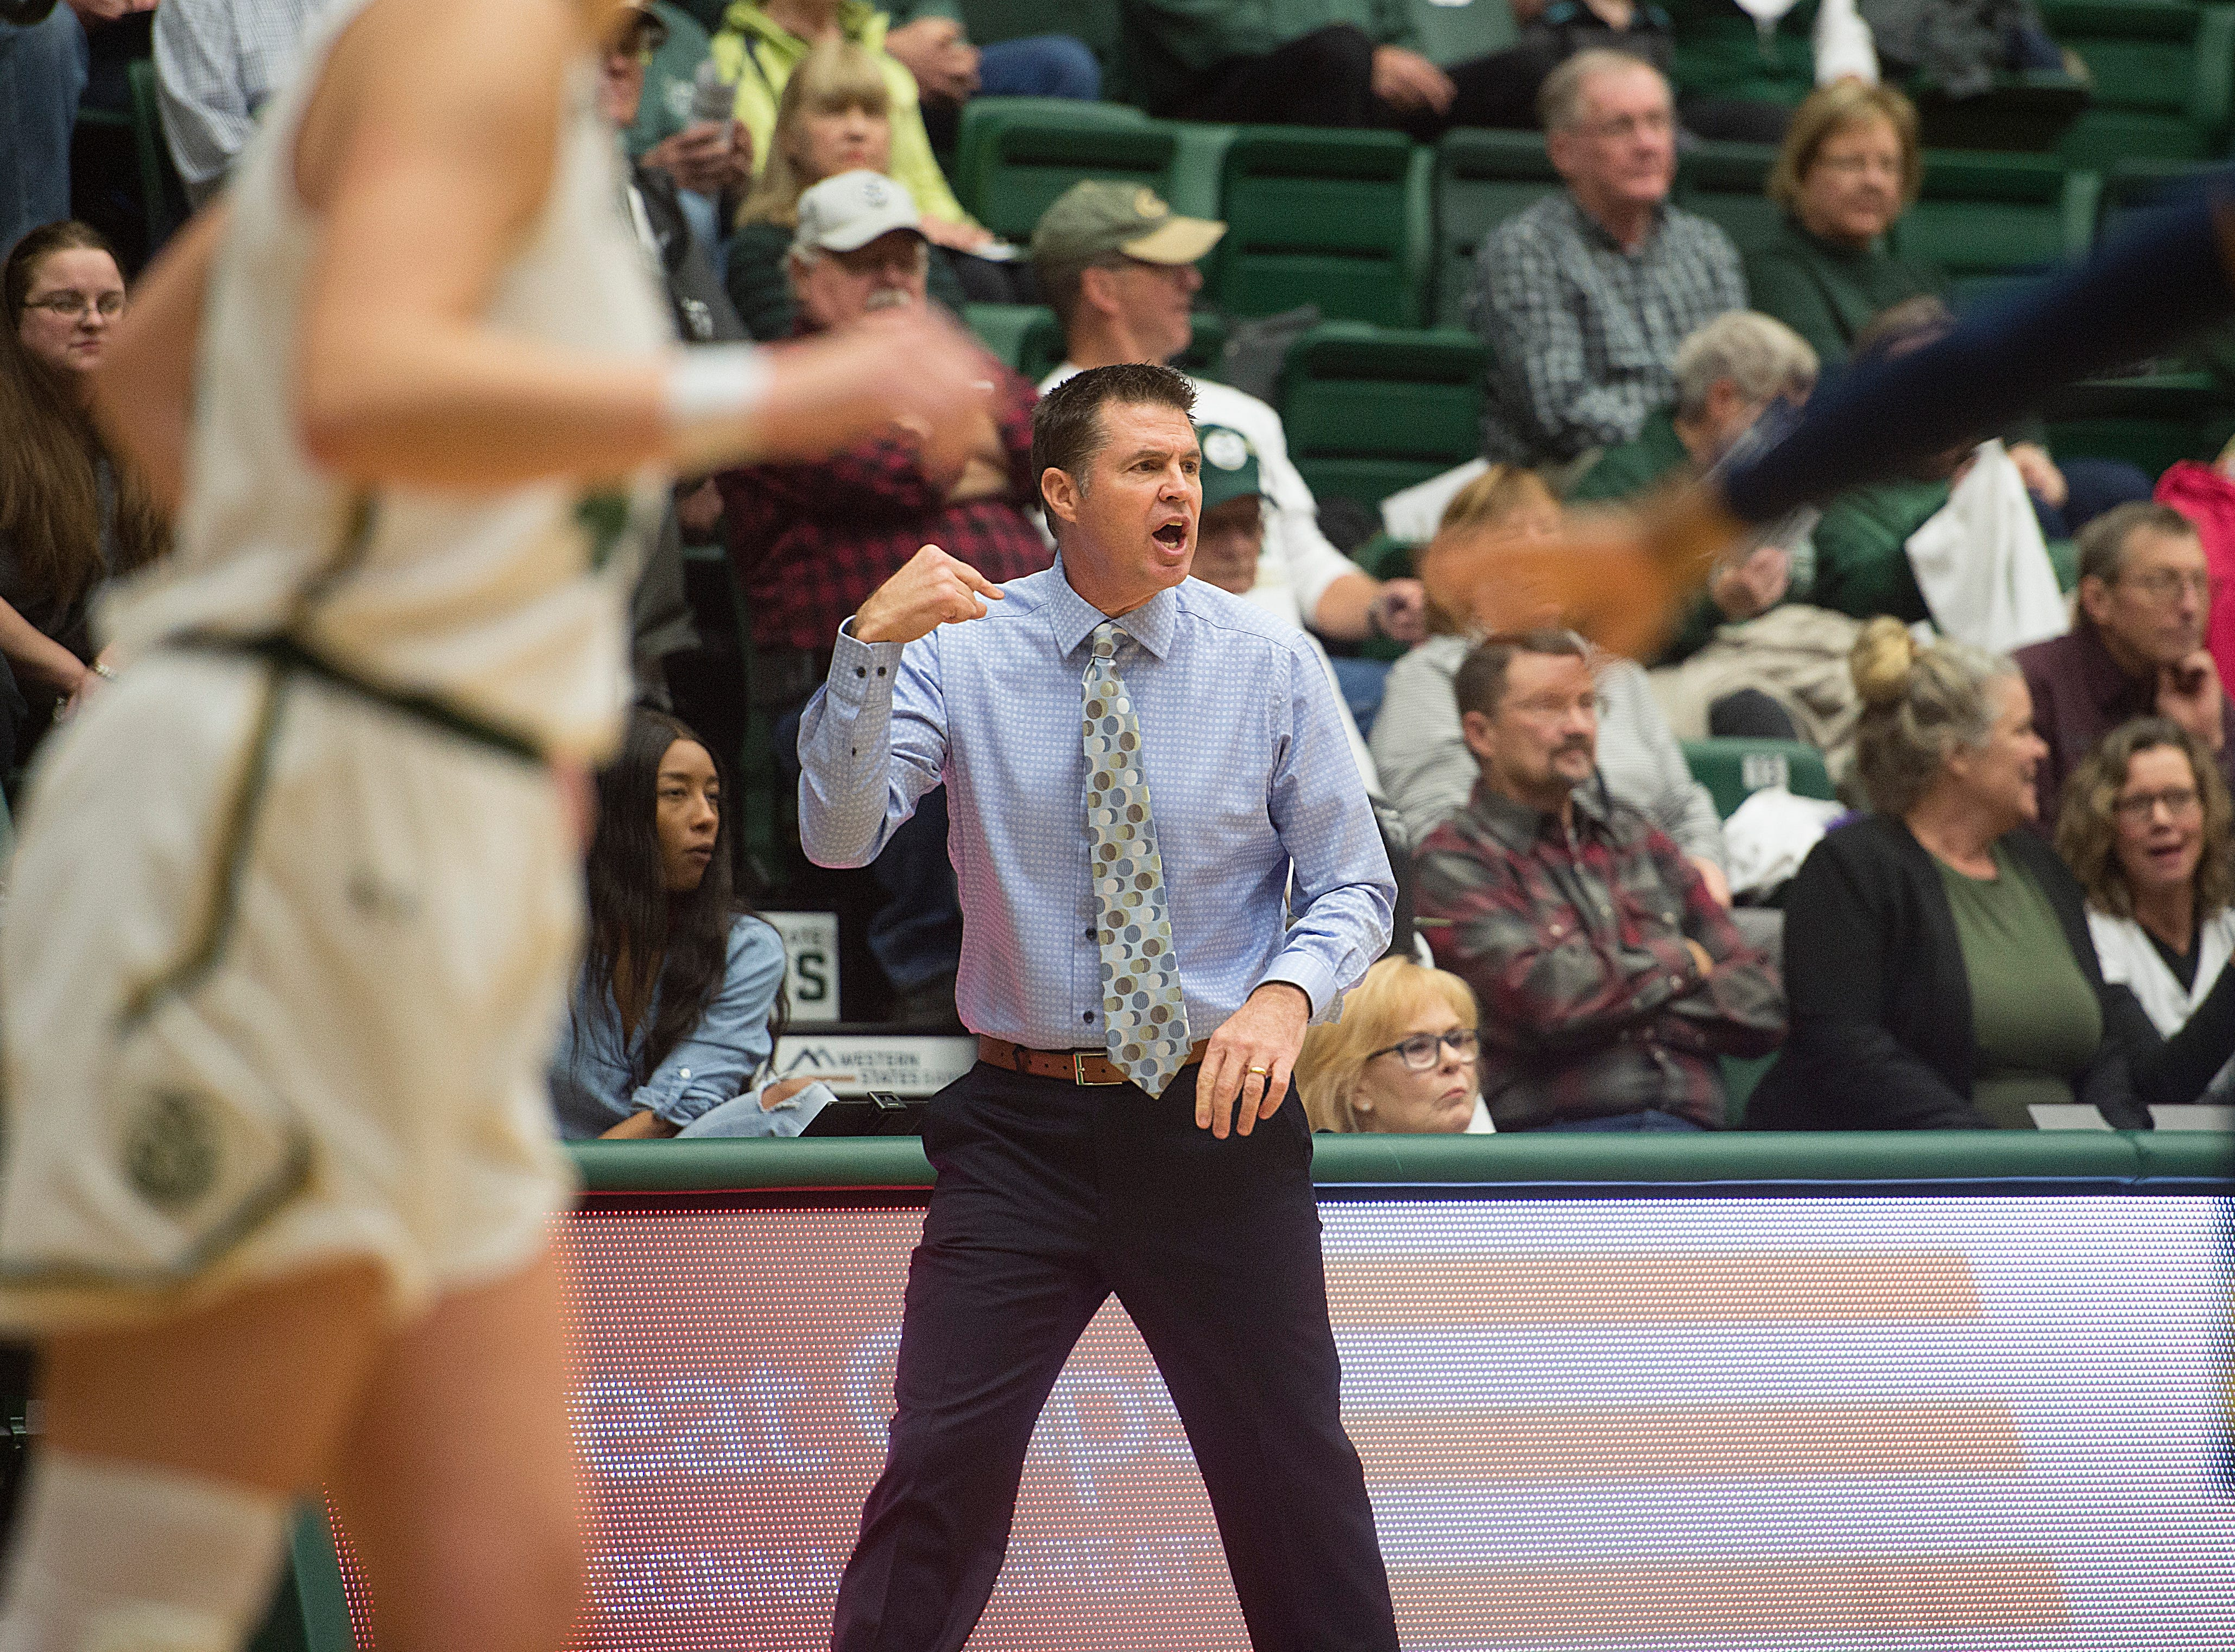 CSU coach Ryun Williams gives instructions to the Rams during a game against Northern Arizona at Moby Arena on Wednesday, December 5, 2018.